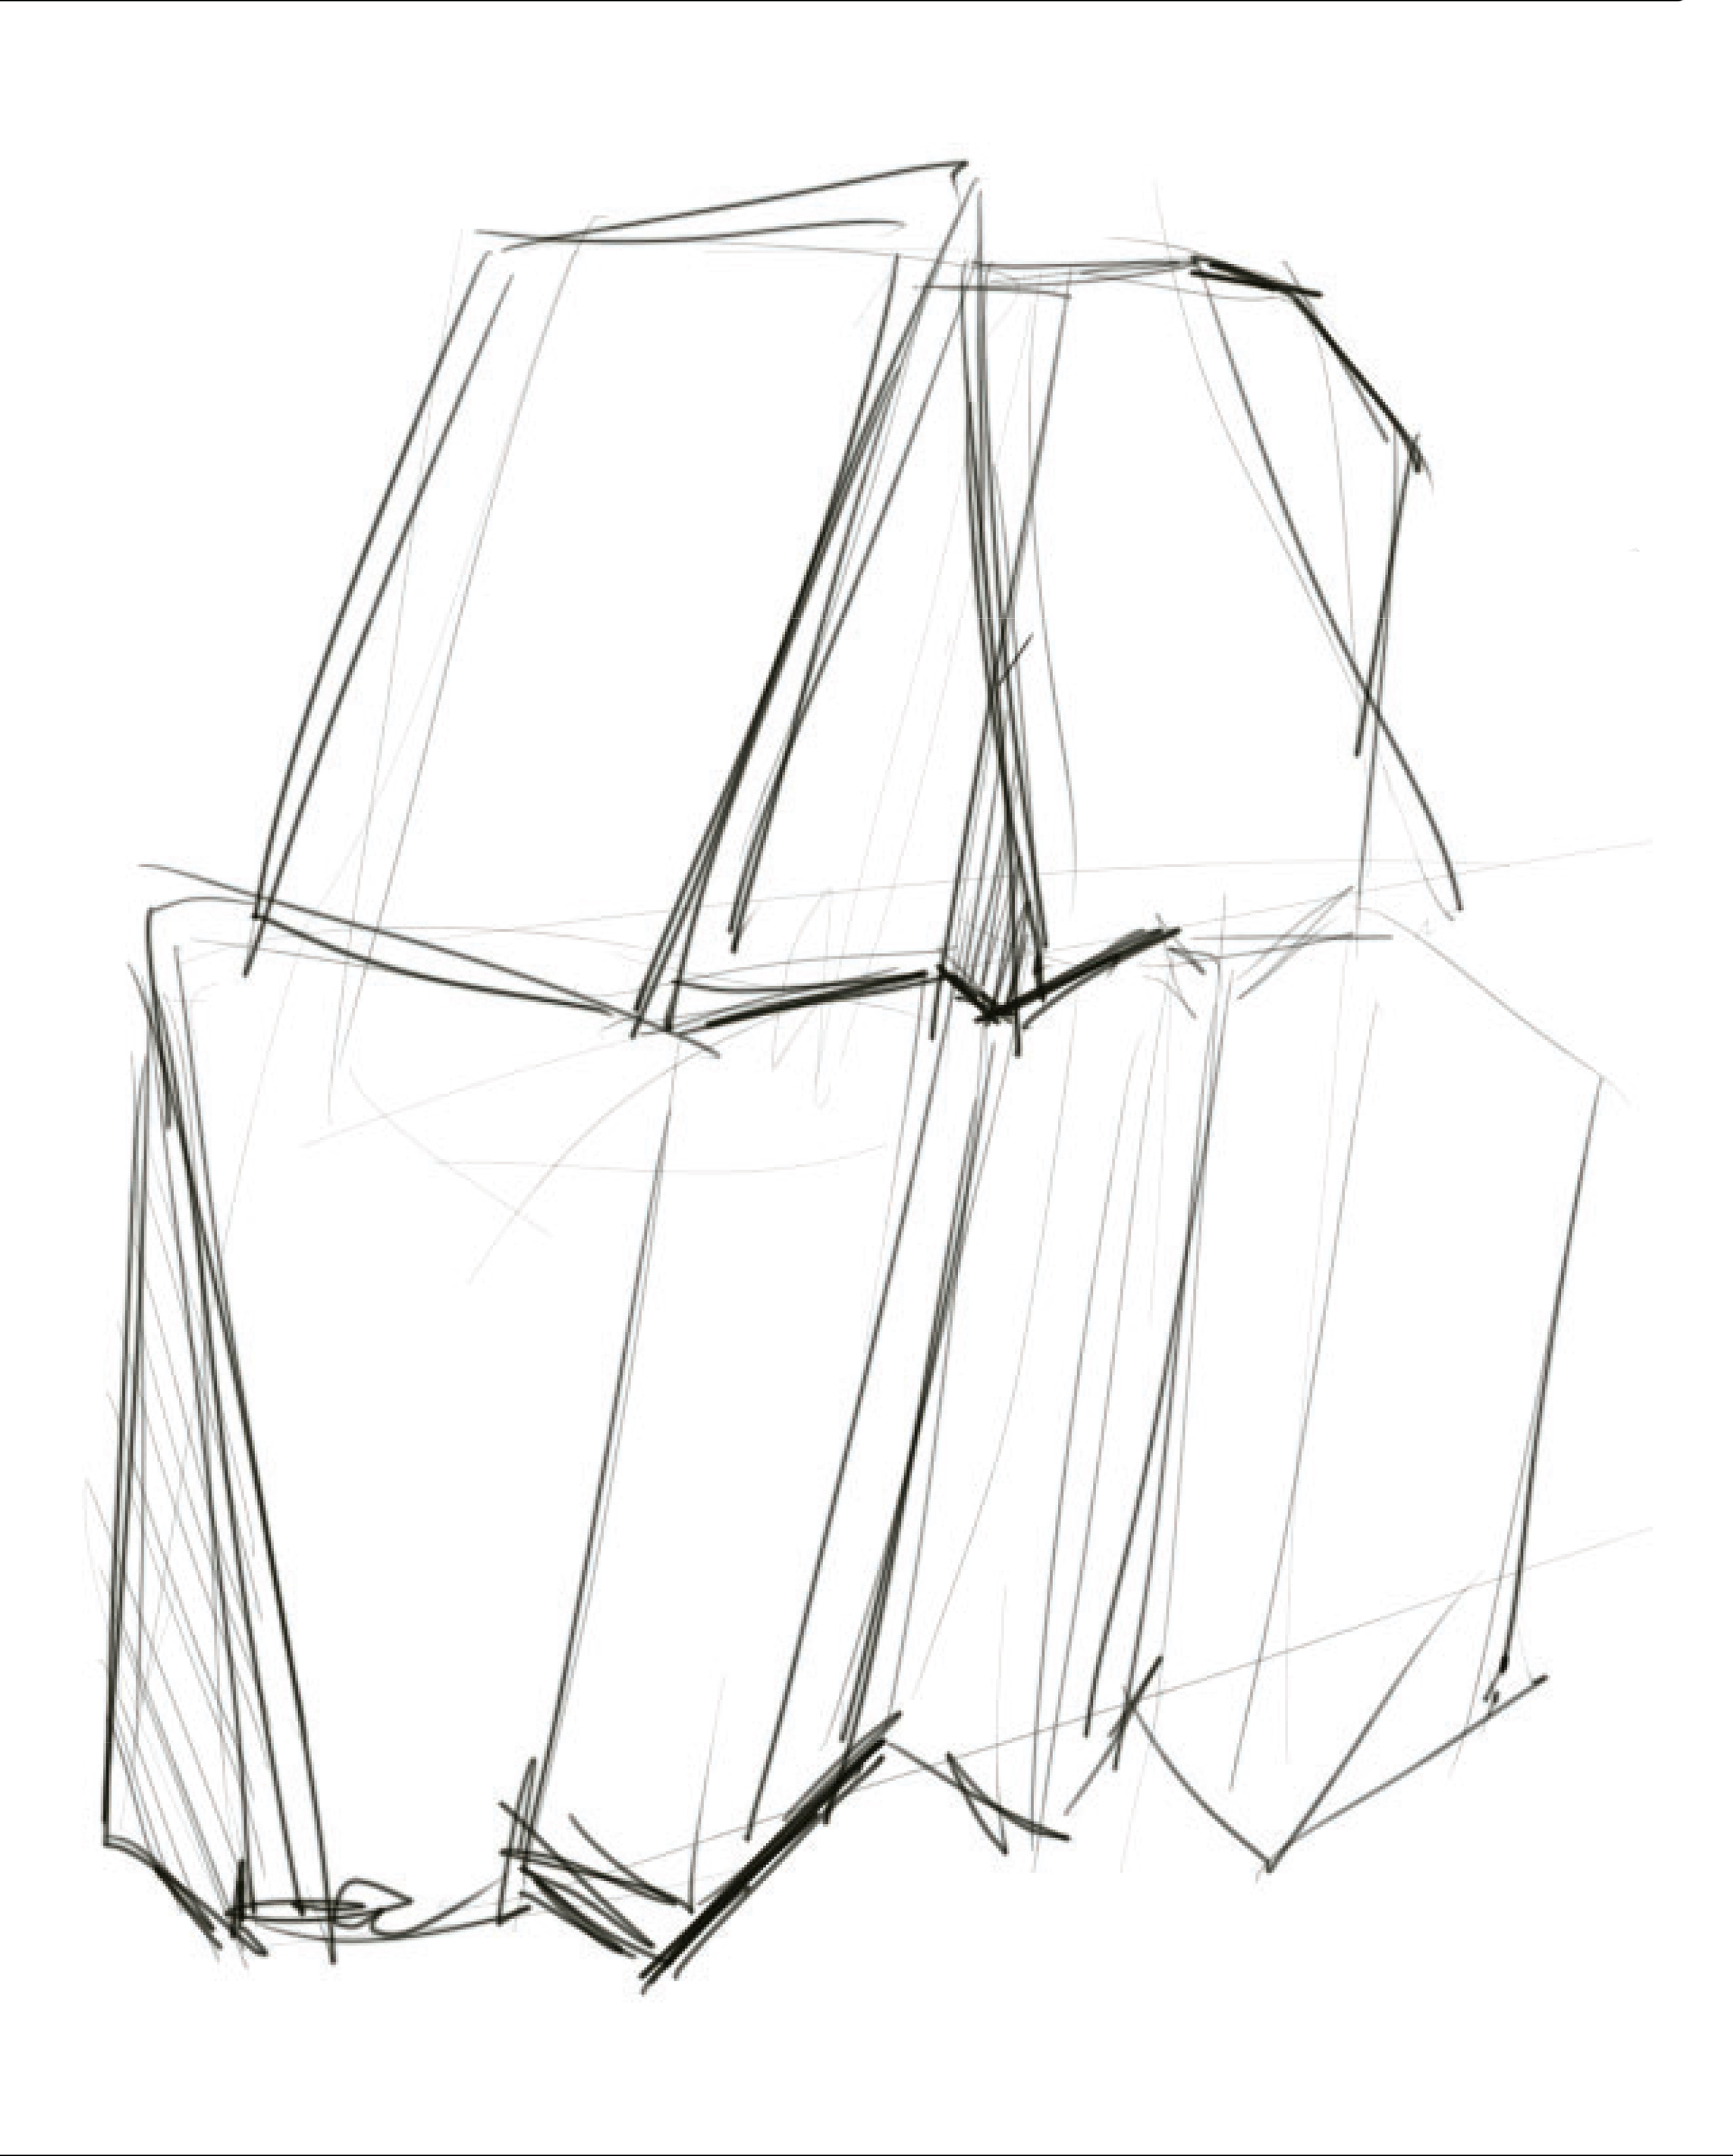 my little frank gehry ideation of the iac building